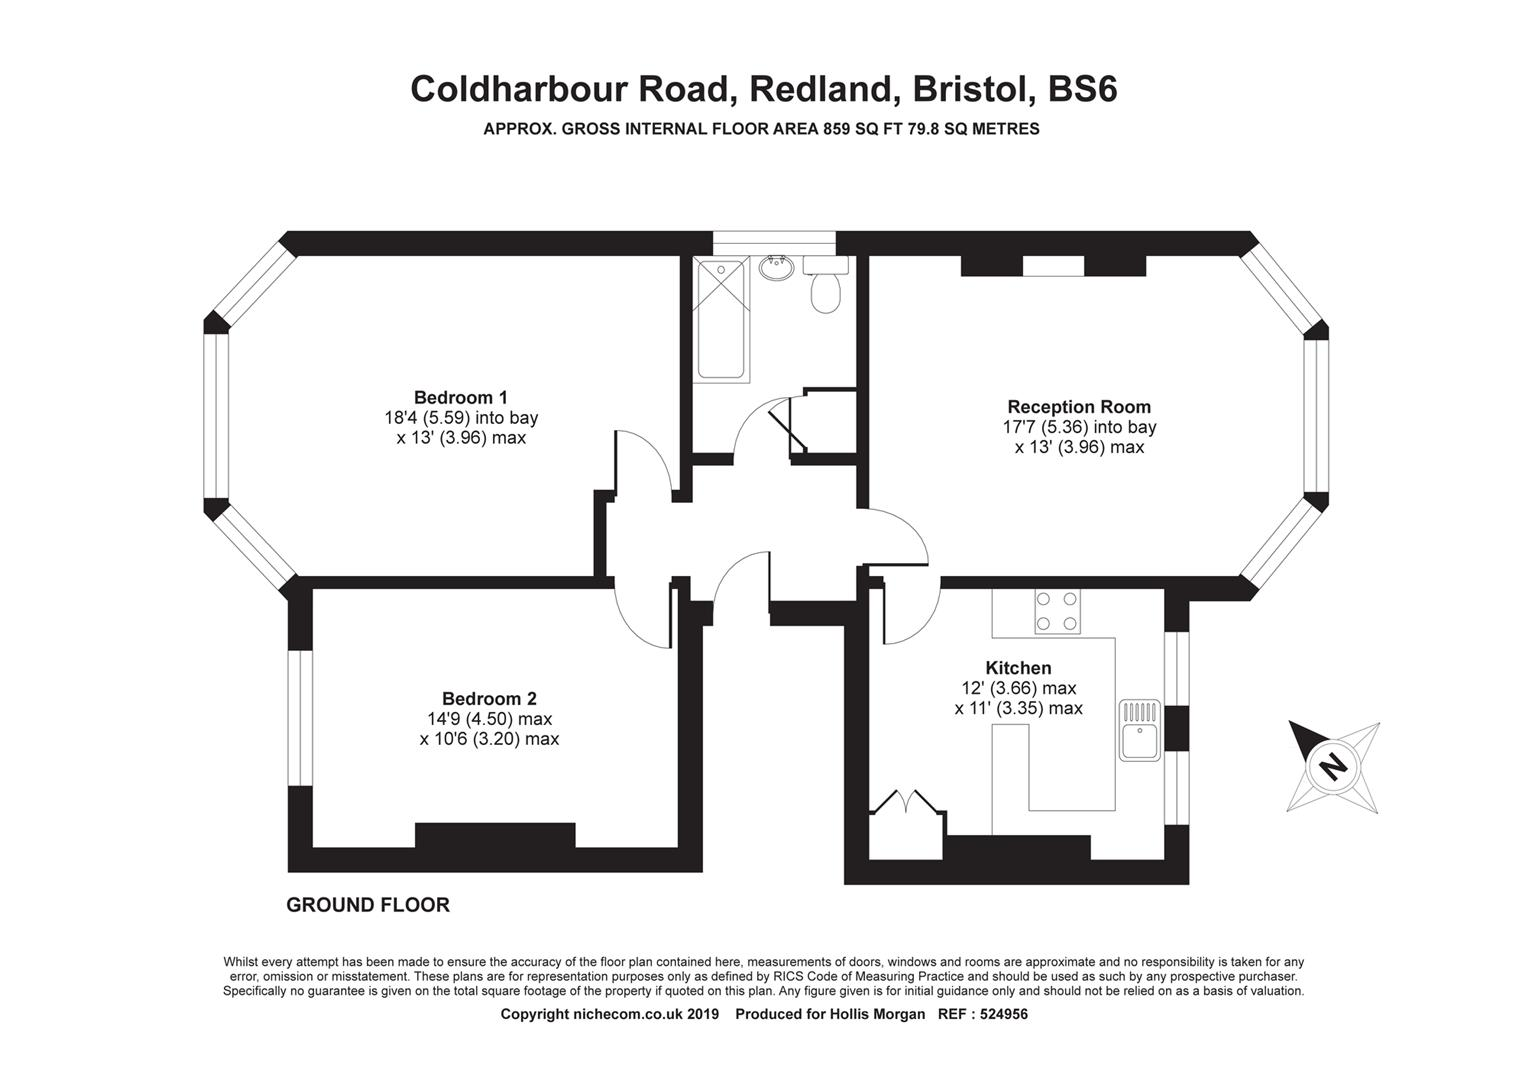 Floorplans For Coldharbour Road, Redland